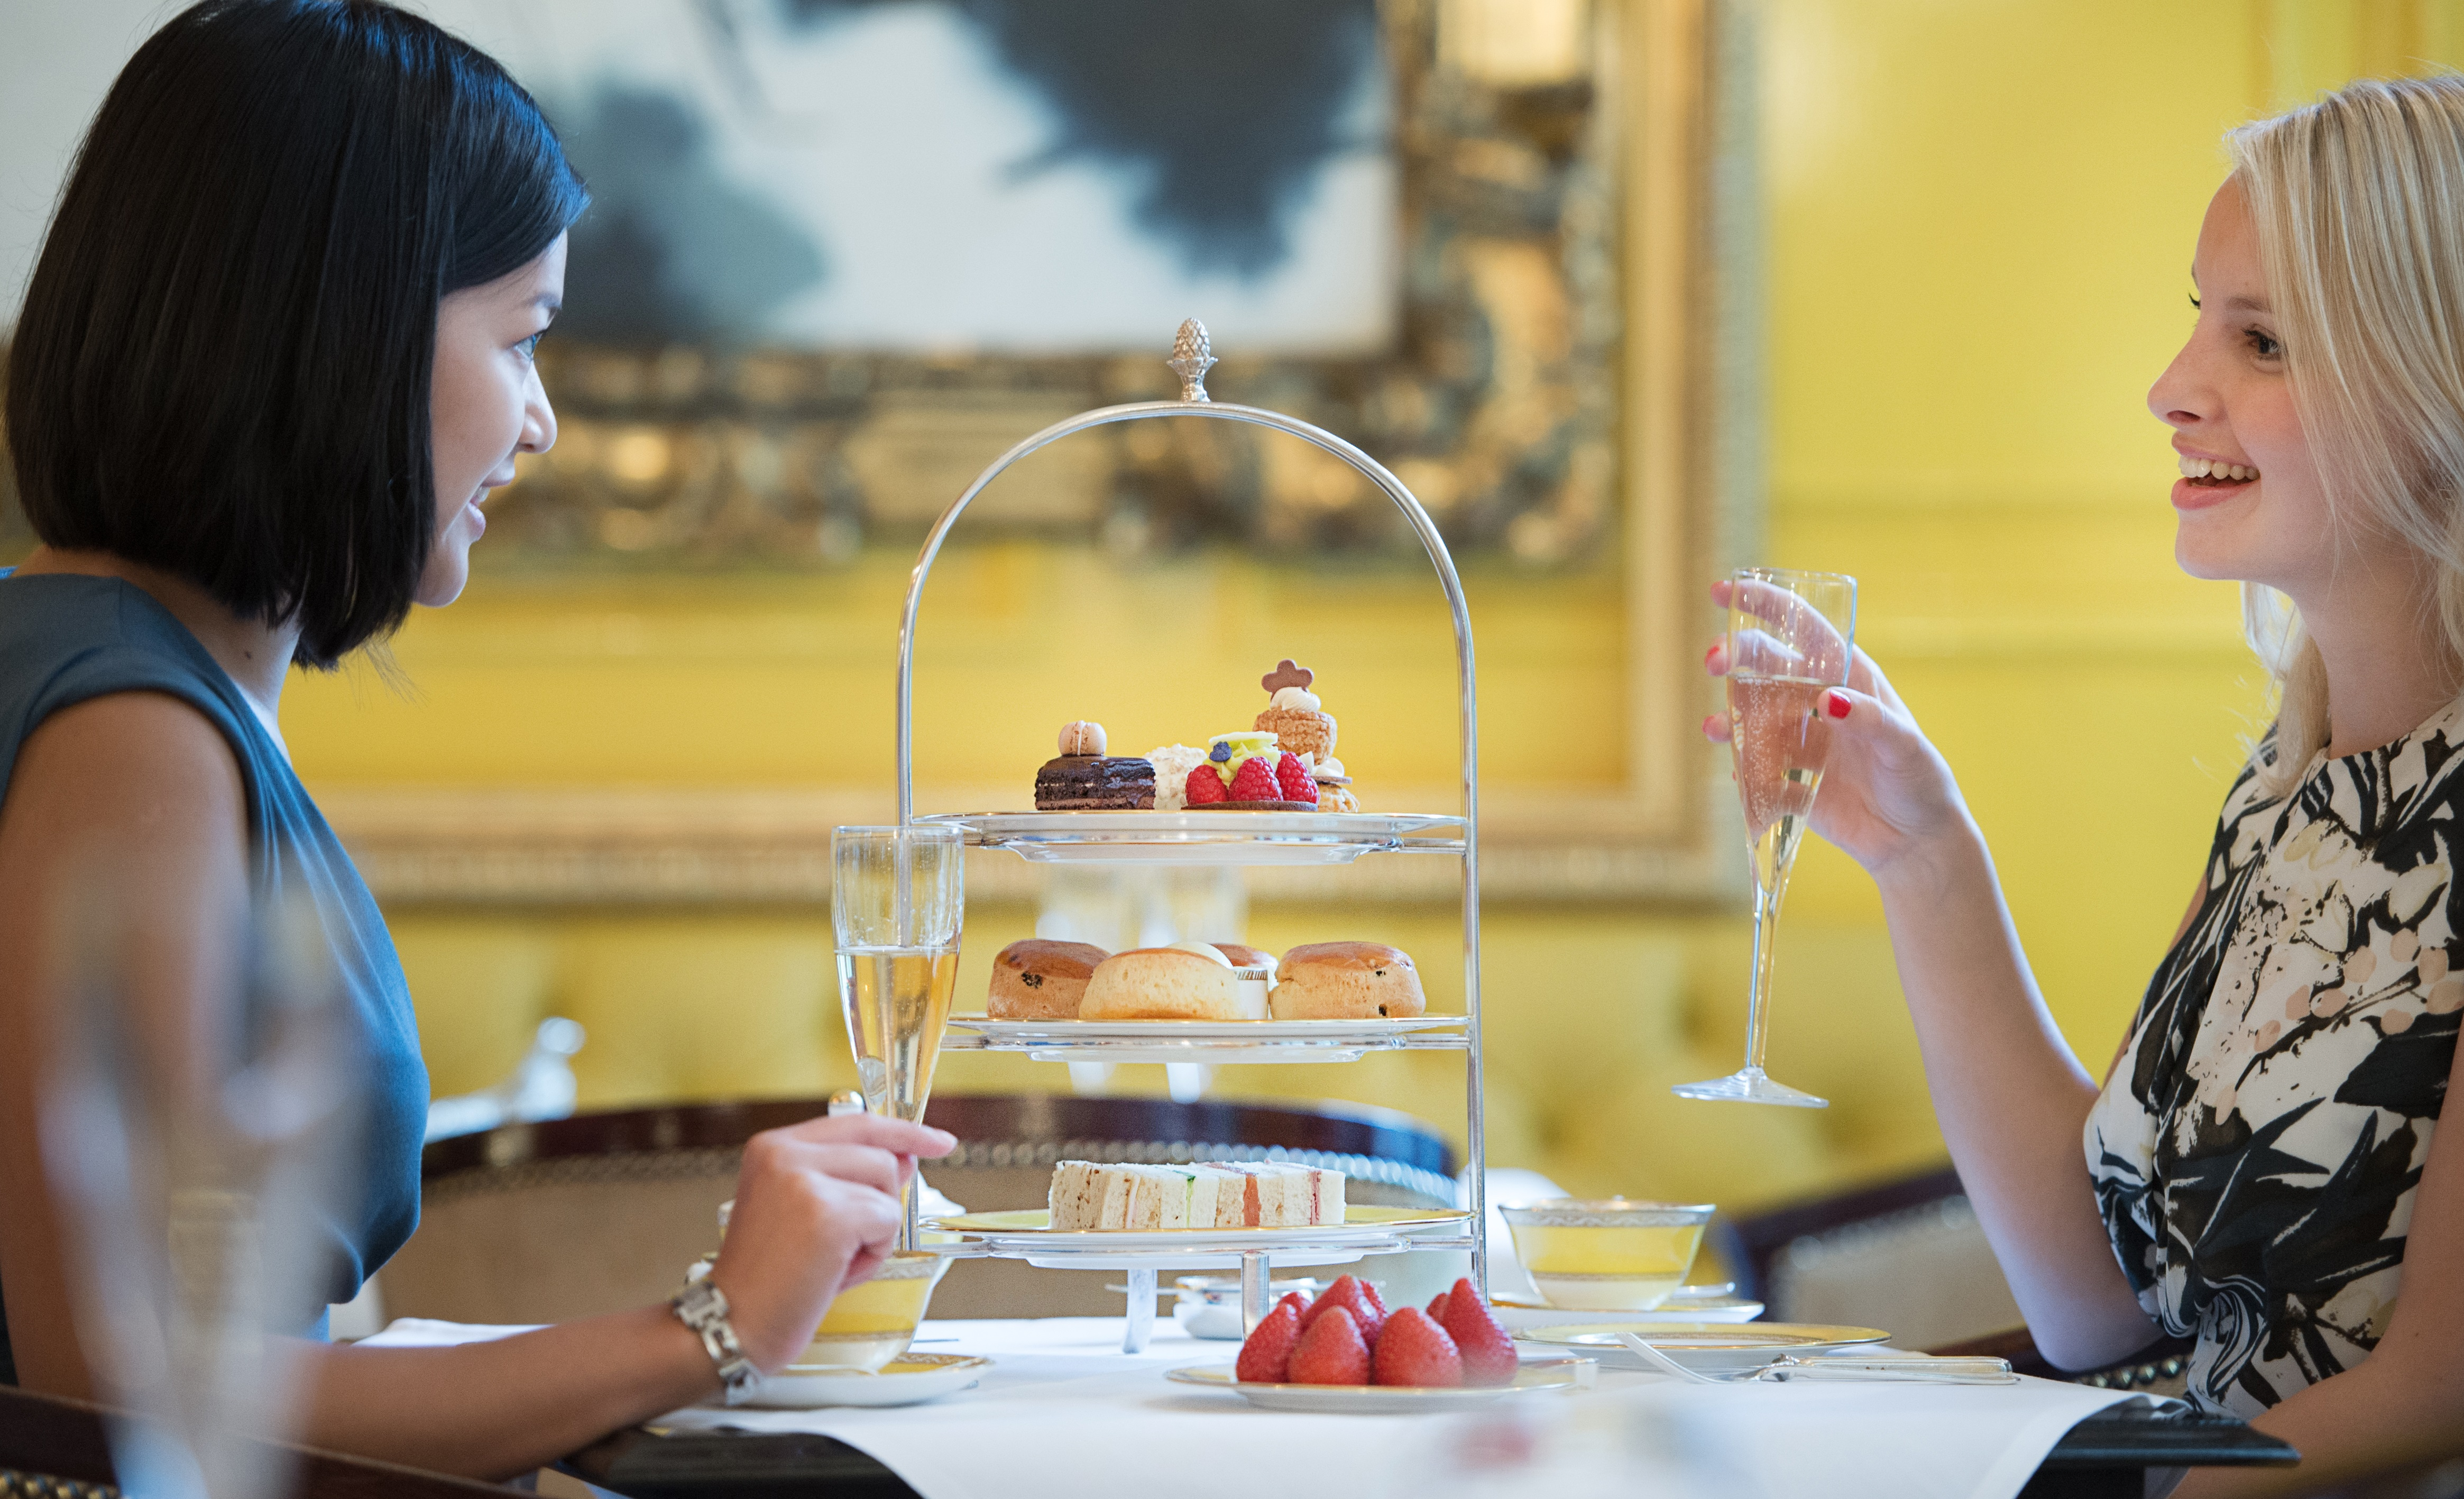 Afternoon Tea at The Goring - London